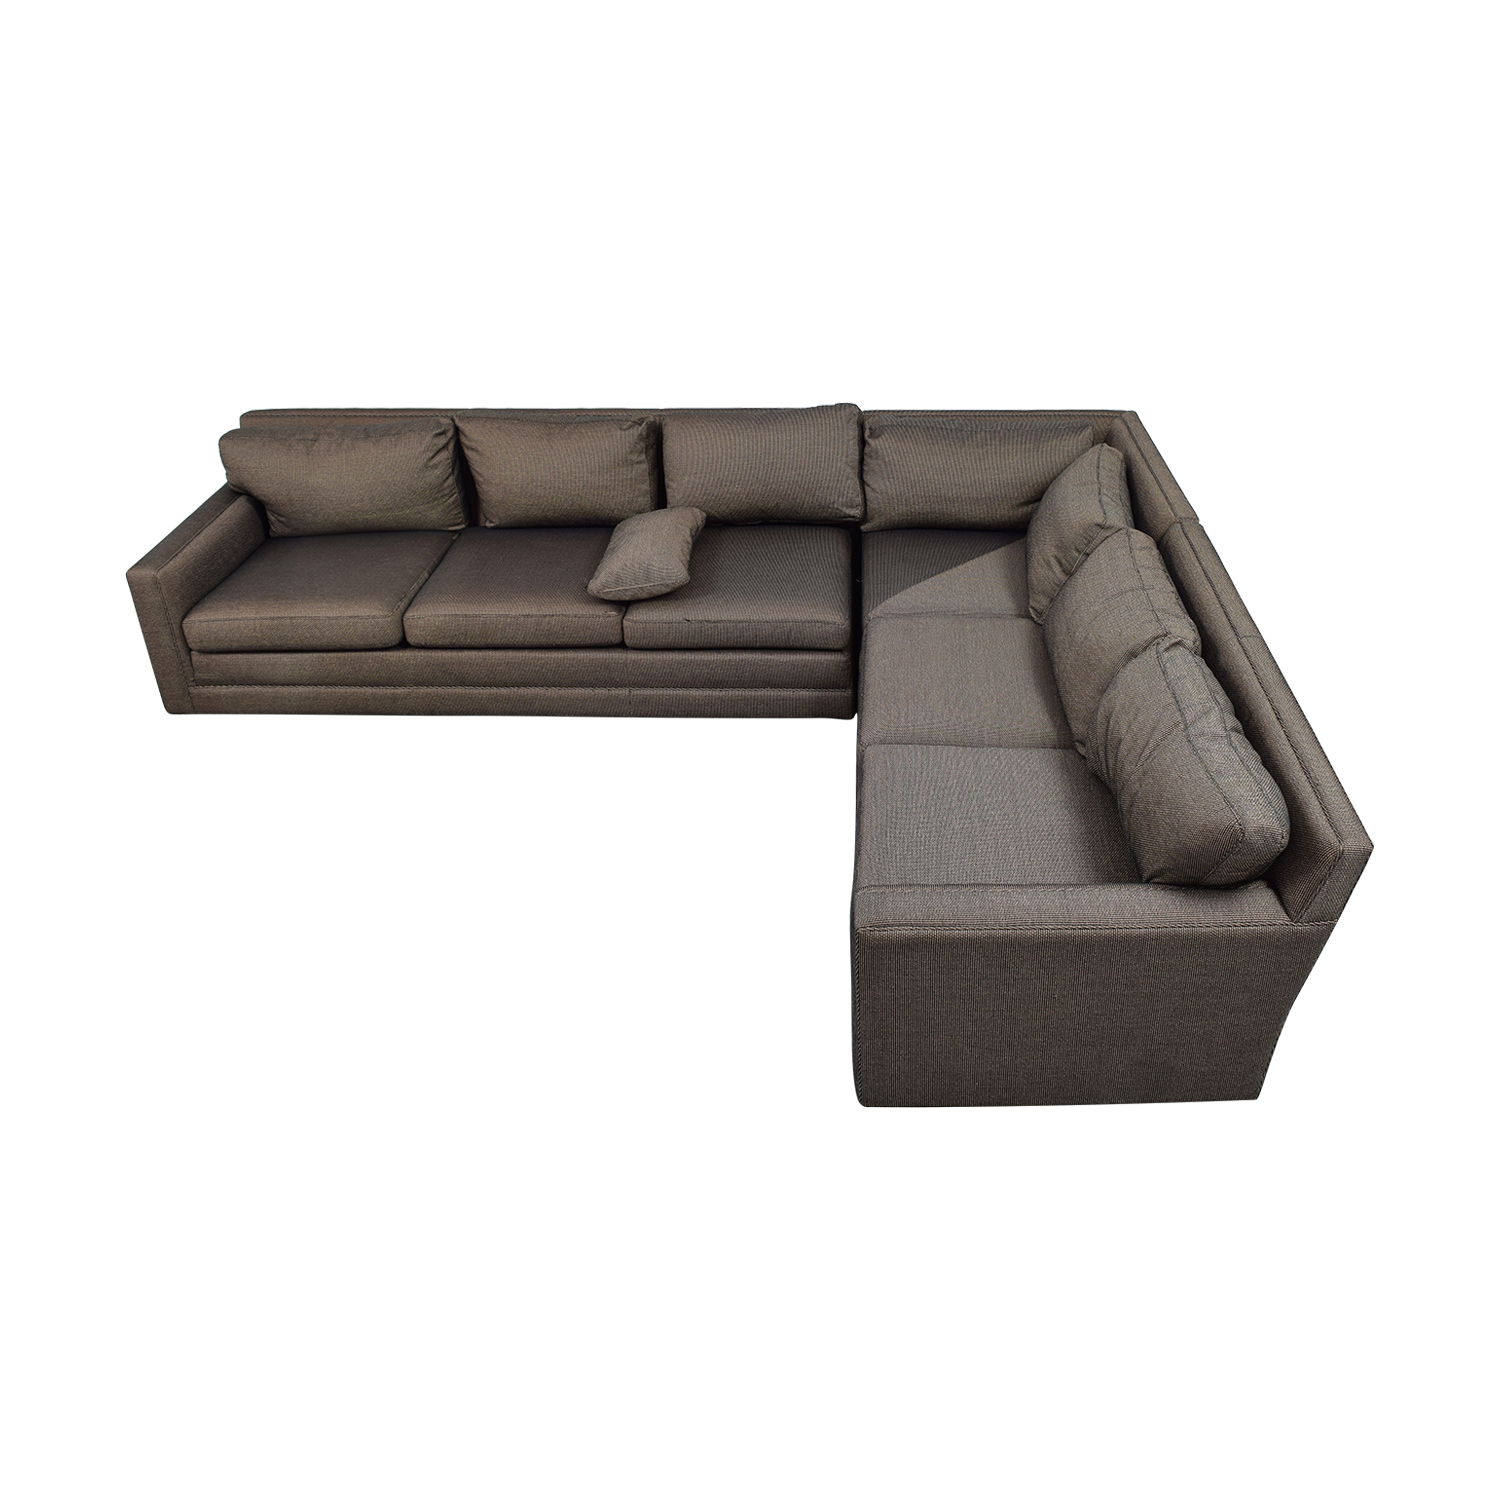 buy Keilhauer Keilhauer Cascade Black and Tan Tweed L-Shaped Sectional online